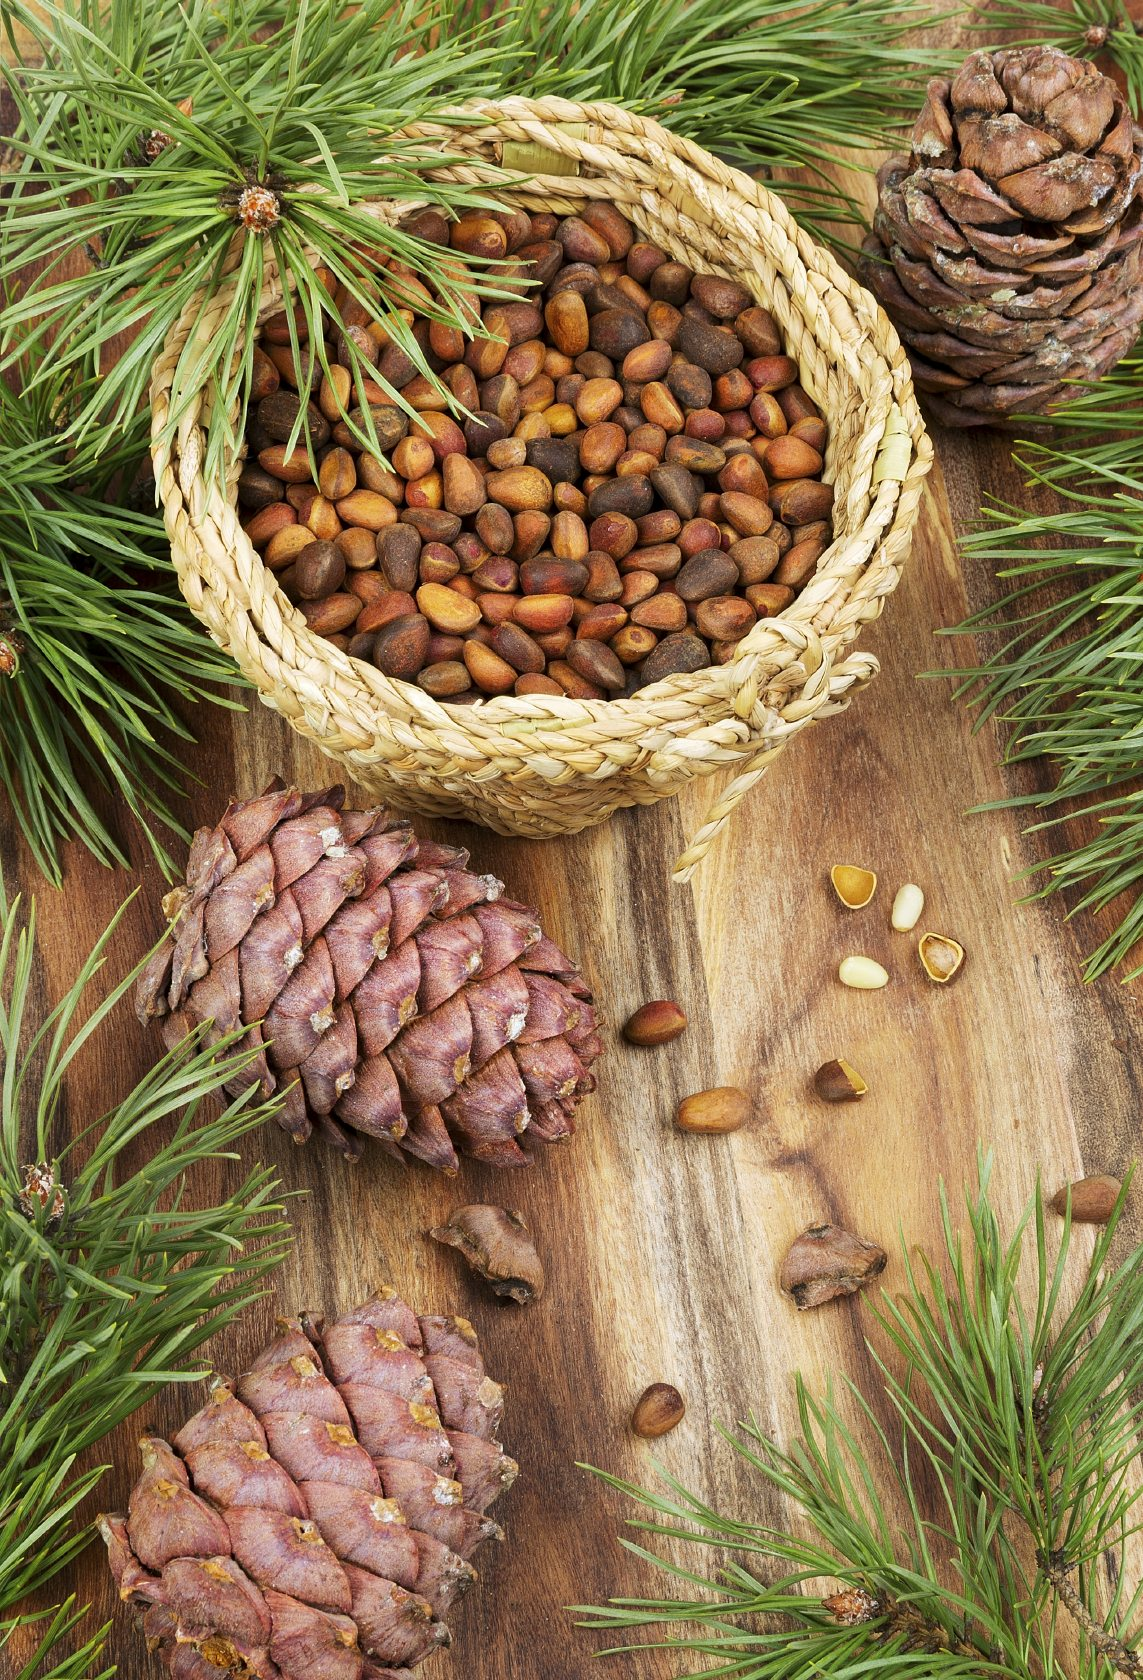 Where Do Pine Nuts Come From: Harvesting Pine Nuts From ...